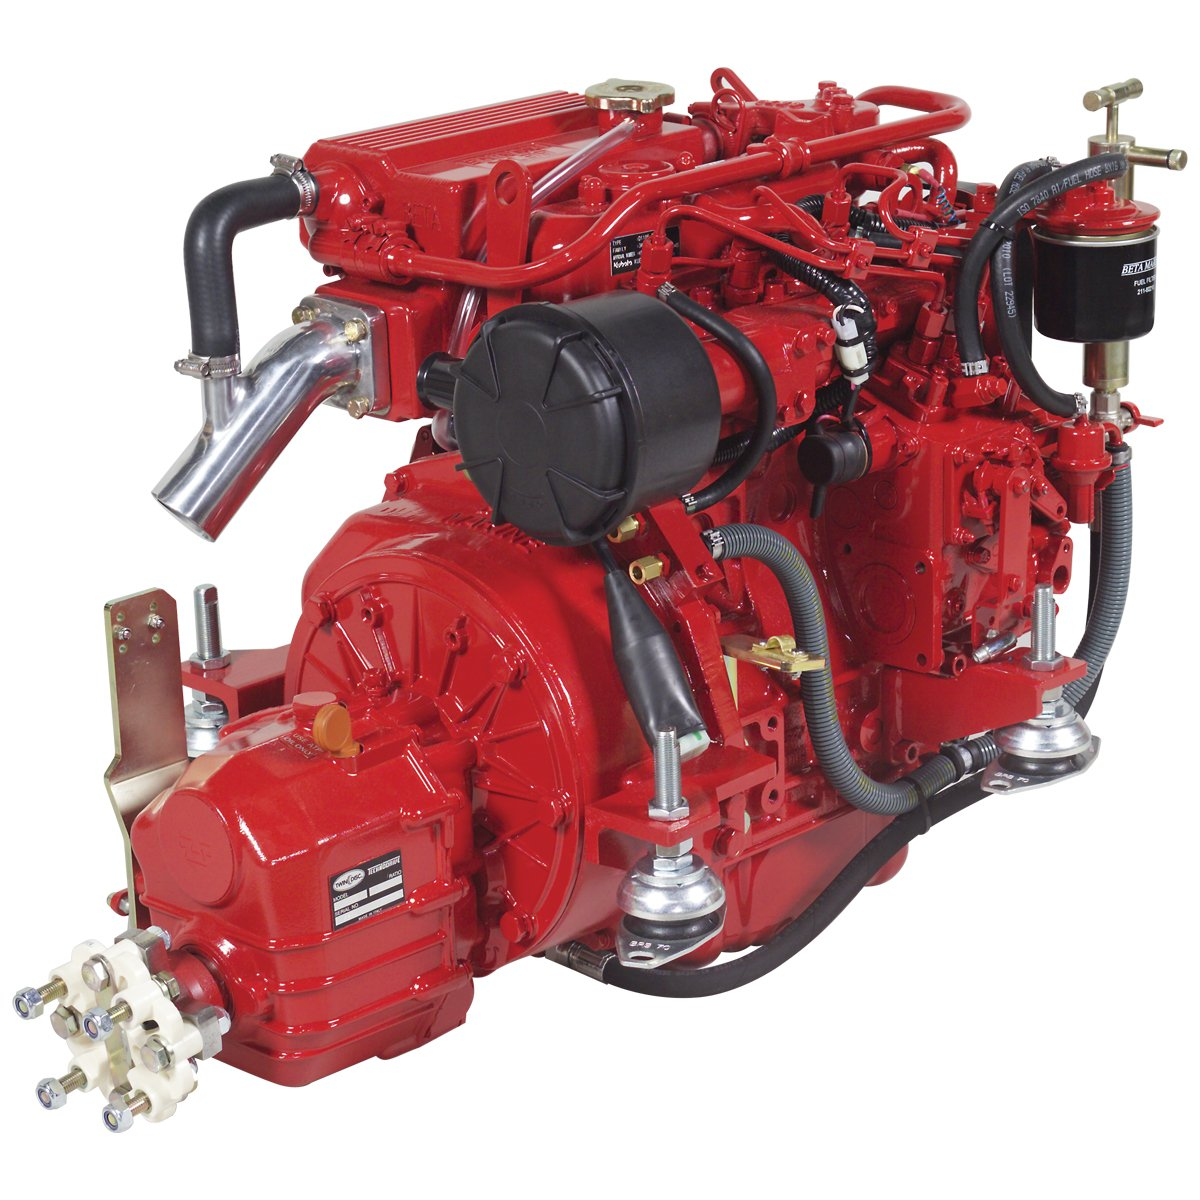 Beta Marine USA - marine diesel propulsion engines - Beta 30 heat exchanger engine